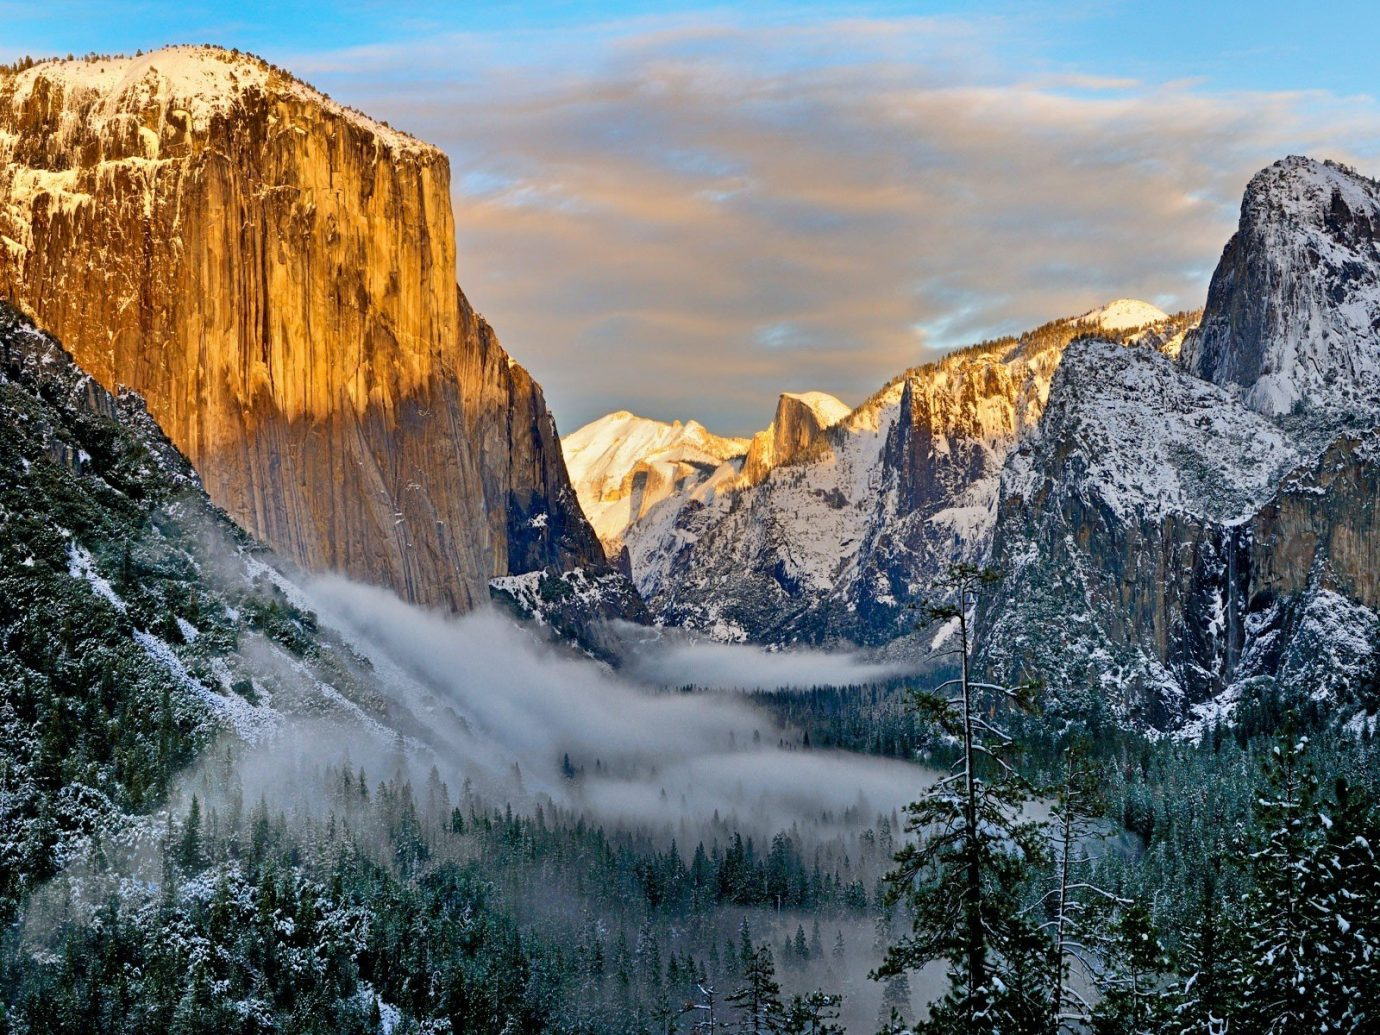 National Parks Outdoors + Adventure Trip Ideas outdoor Nature sky mountainous landforms landform geographical feature wilderness mountain water rock Winter reflection snow mountain range landscape cliff water feature terrain ice formation geology national park